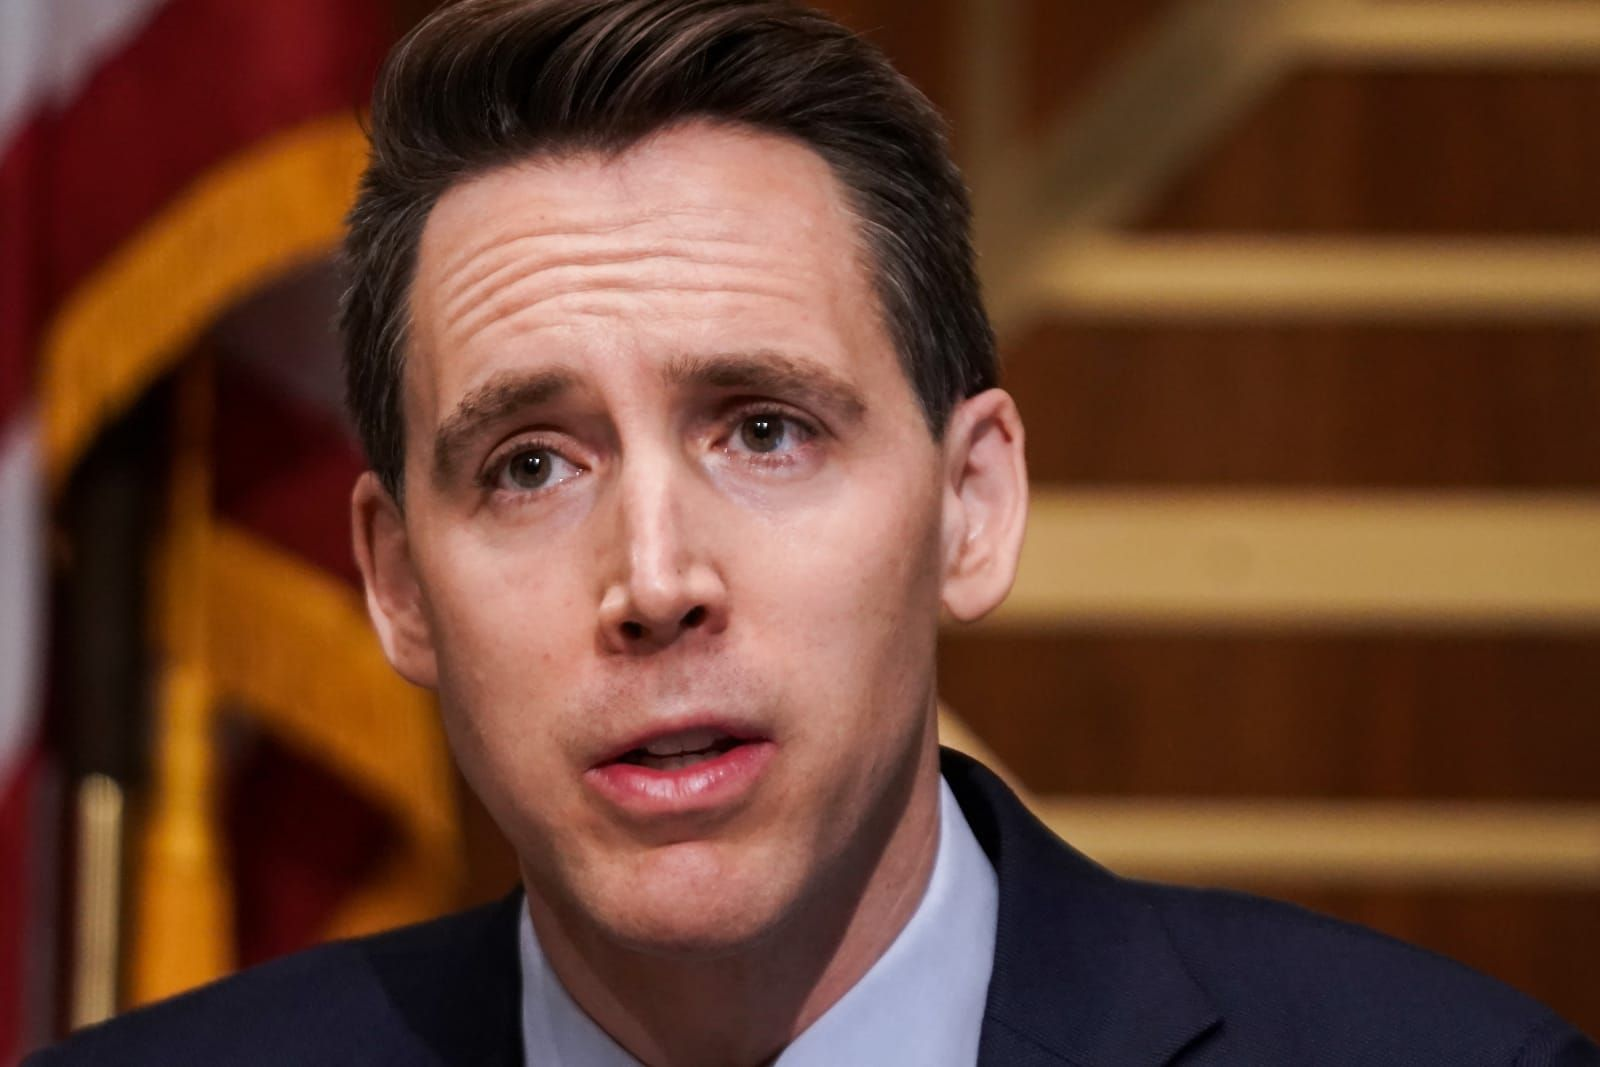 GOP's Josh Hawley sparks outrage by asking Capitol cops if they were 'complicit' in riot he helped provoke